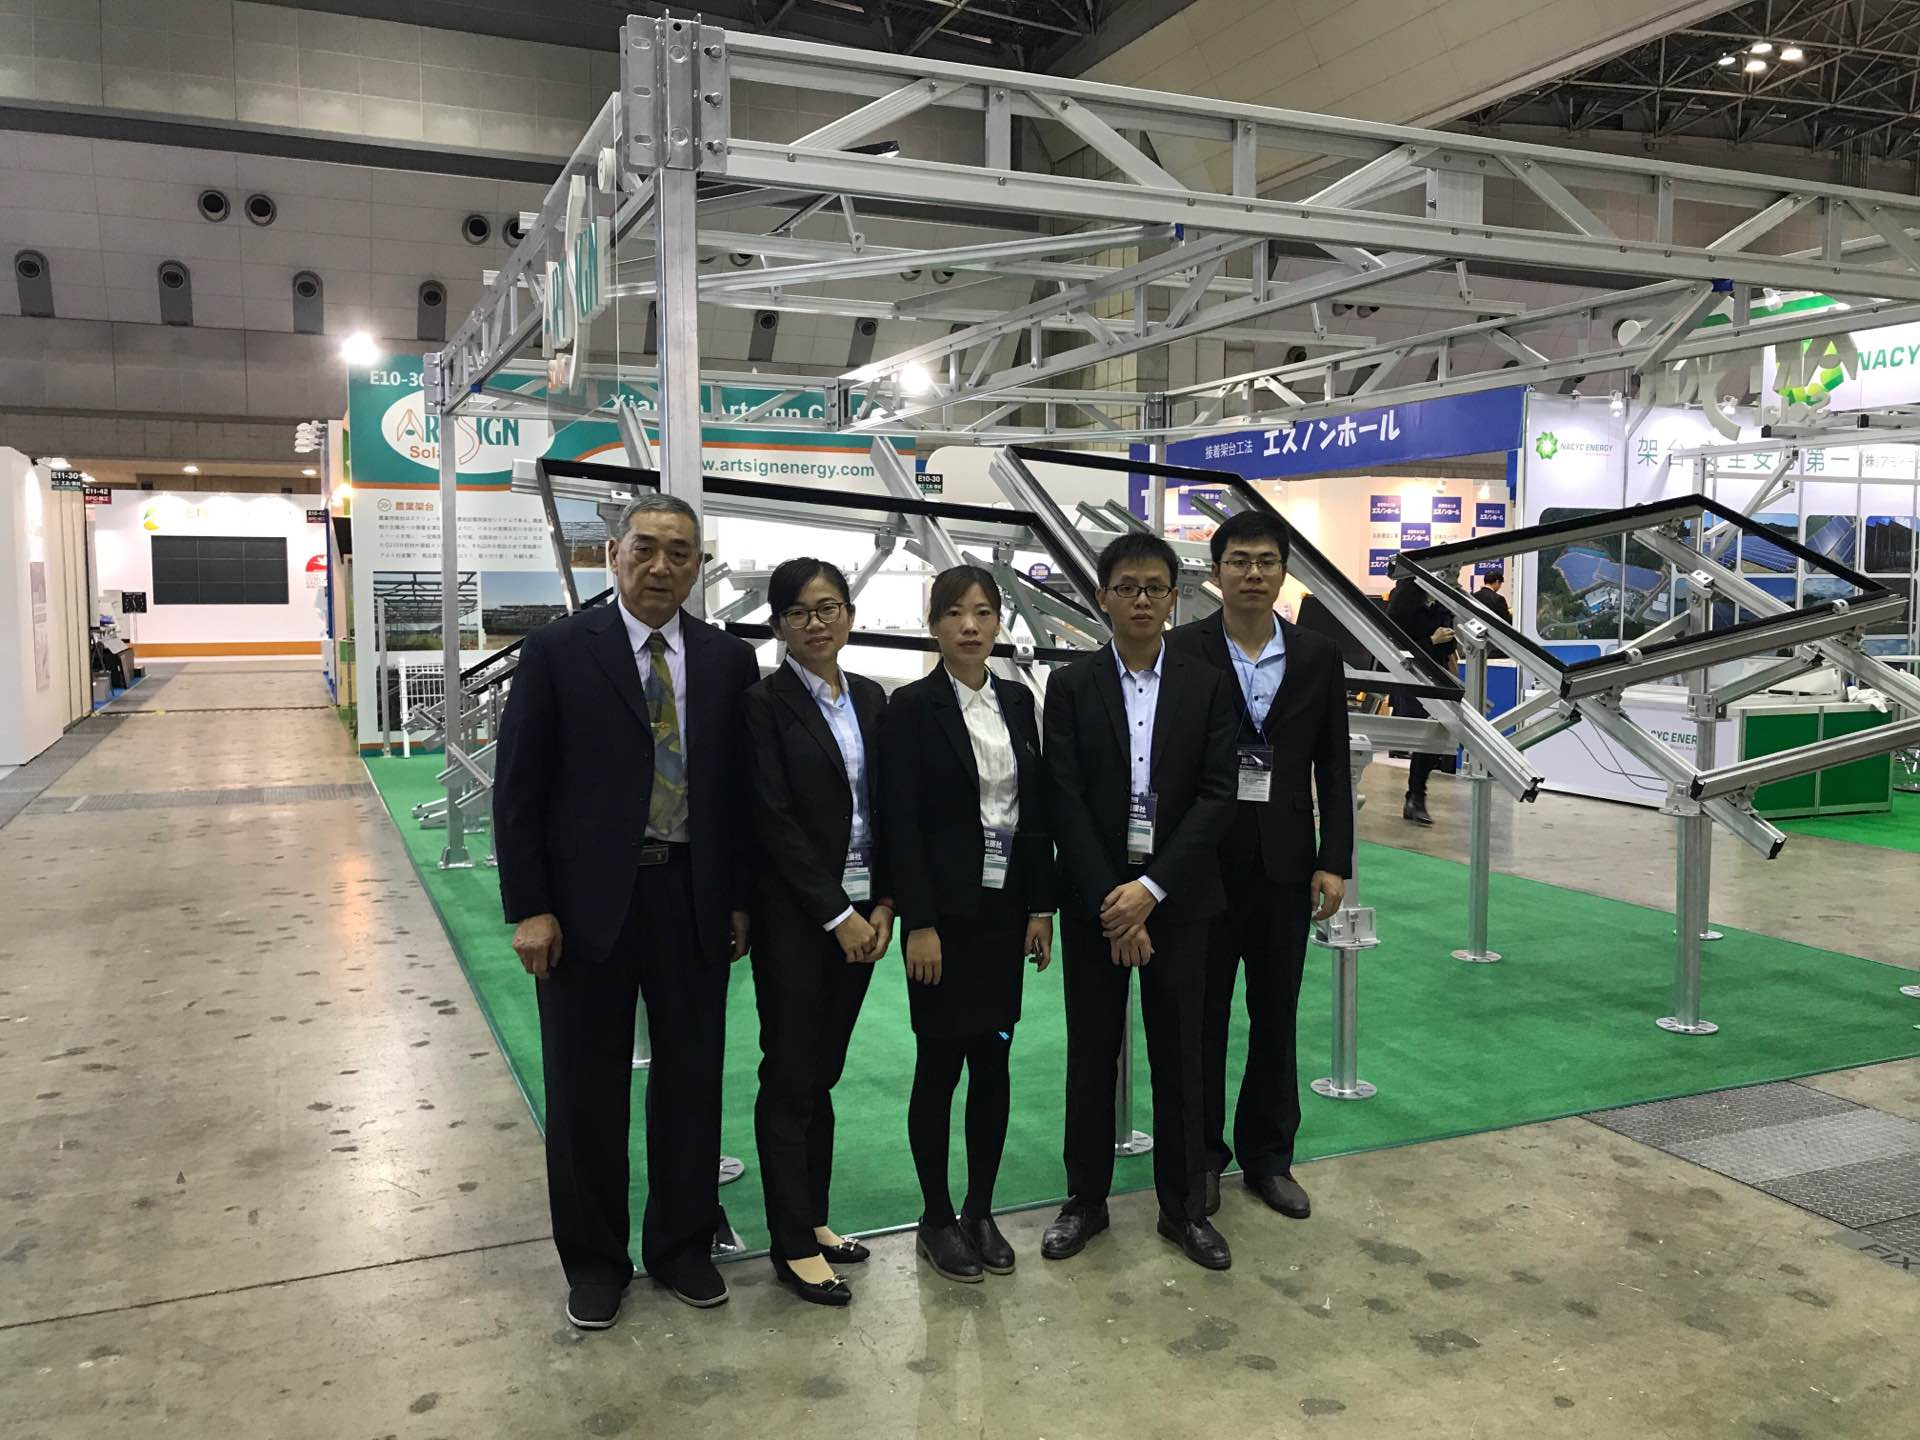 PV system Expo 2018 in Tokyo, Japan on 28th Feb - 2nd March